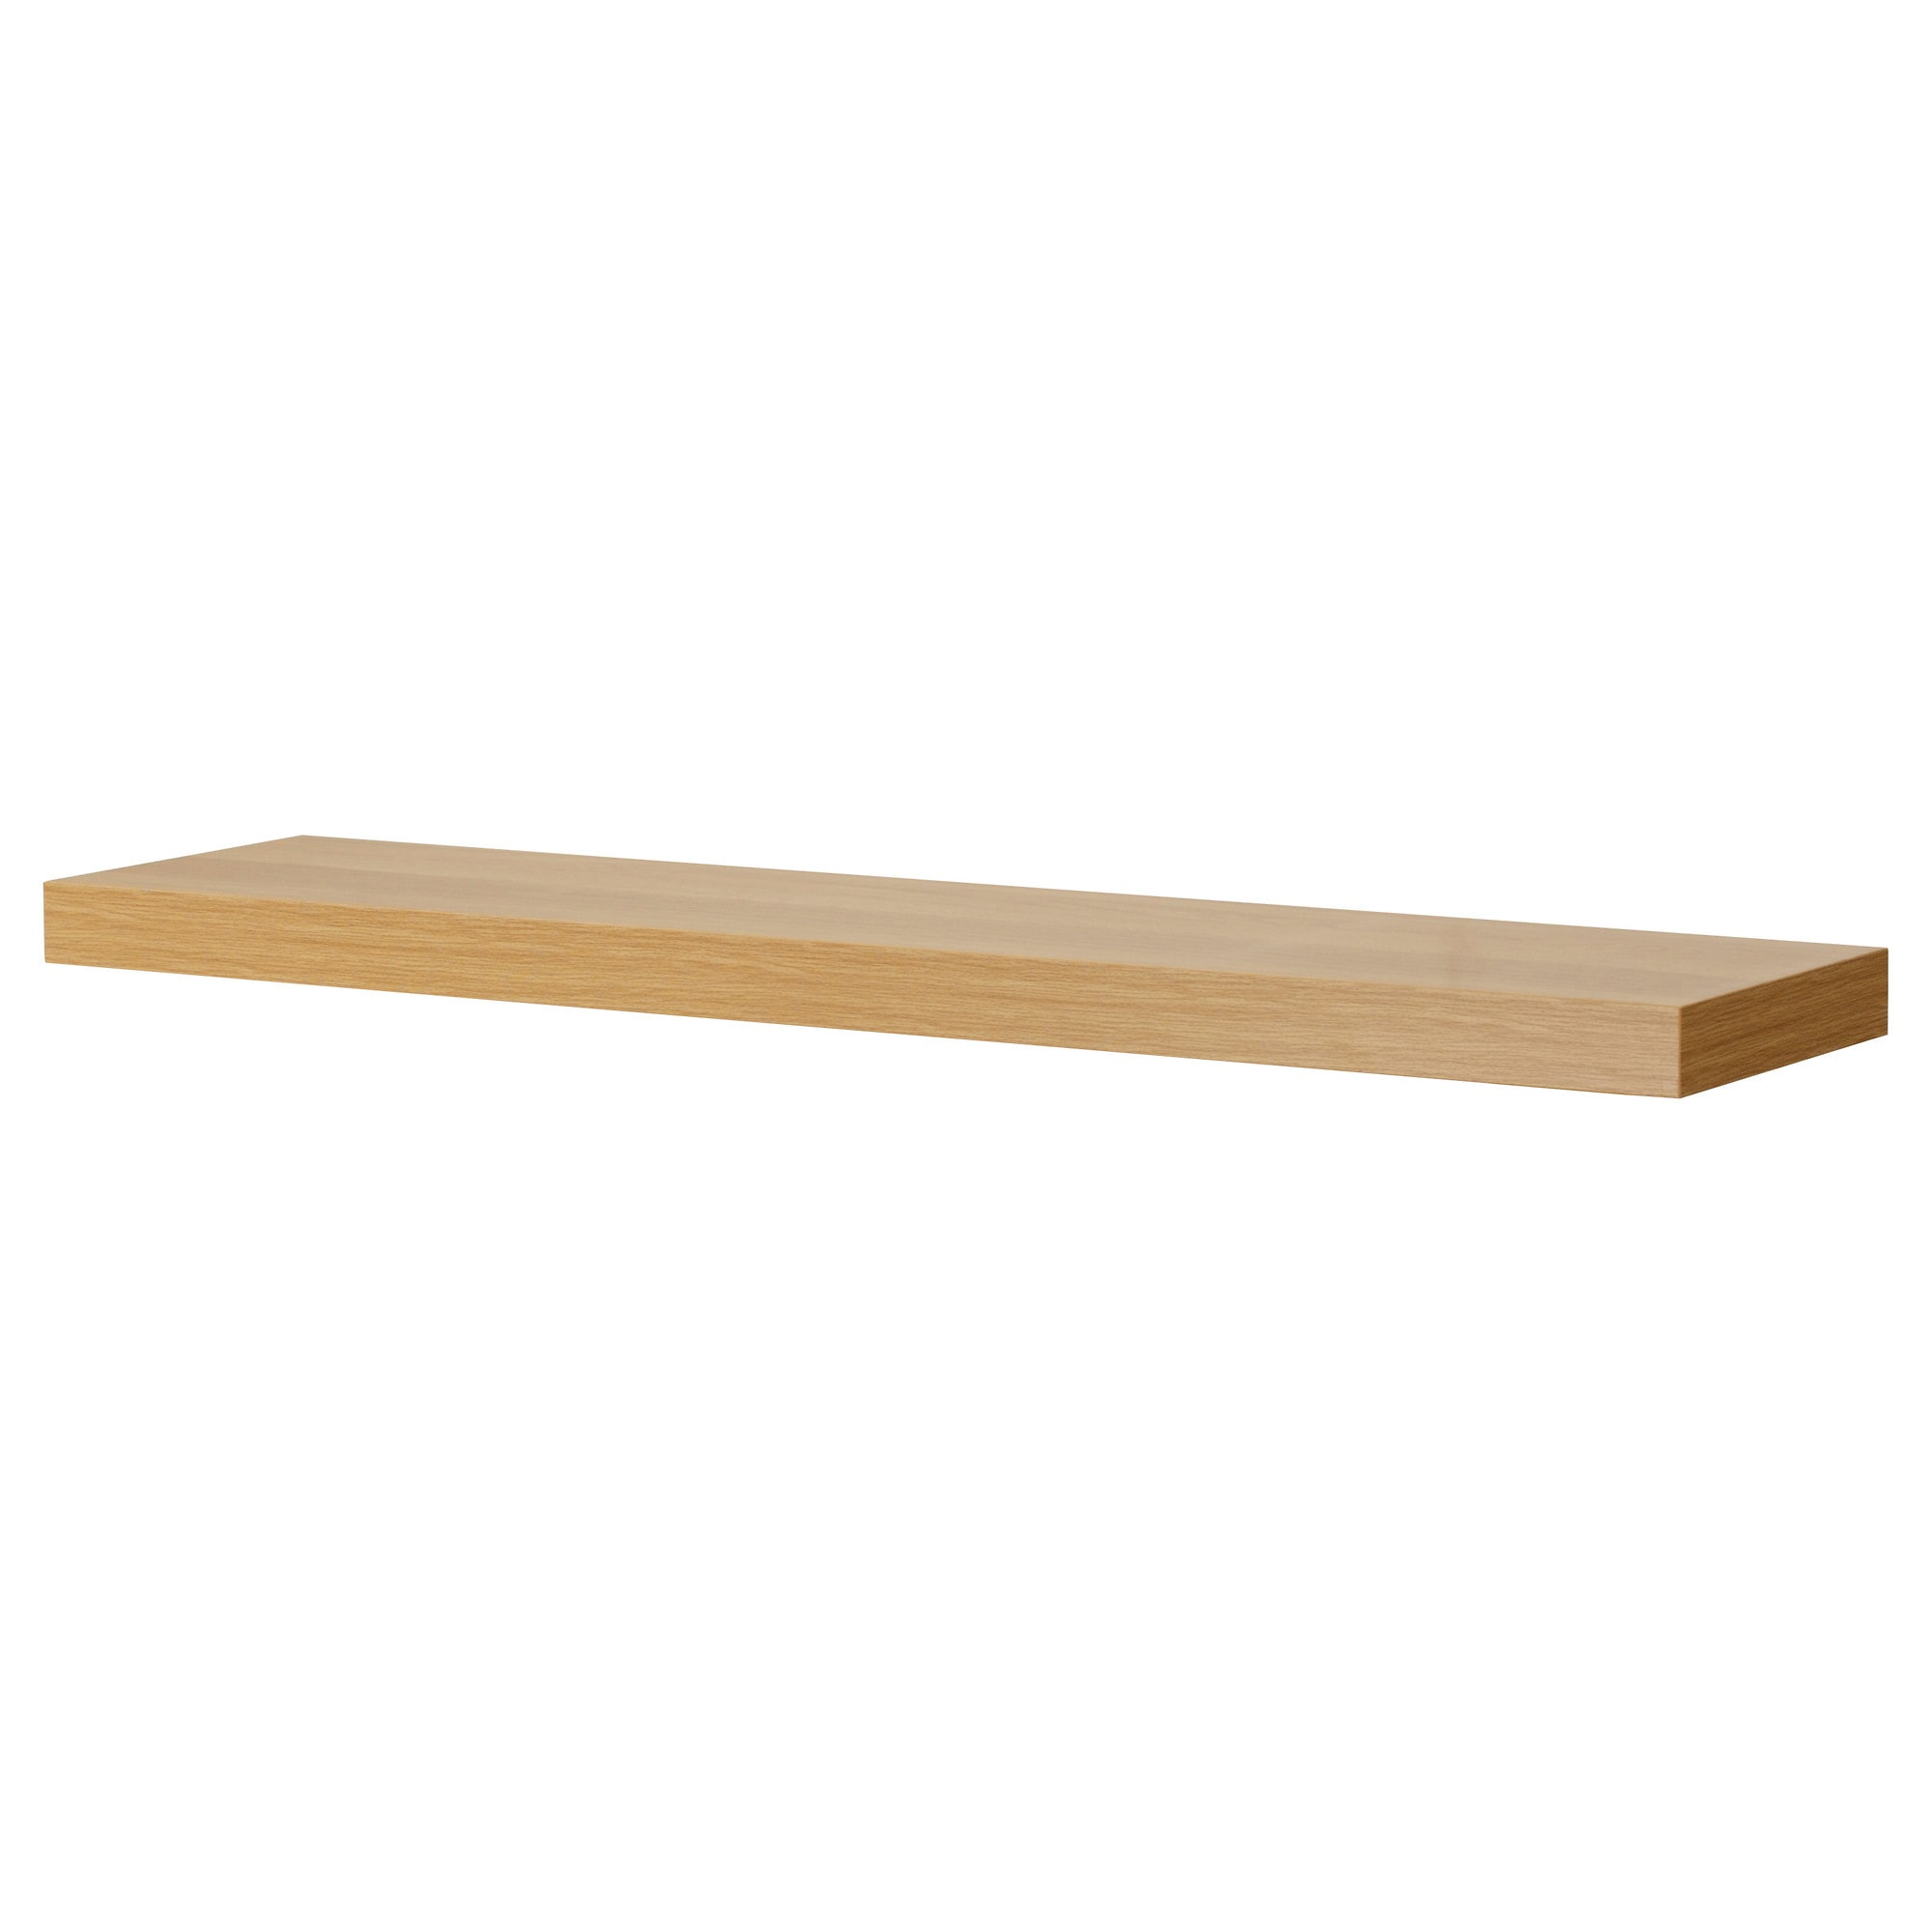 Sensational Wall Shelf Lack Oak Effect Download Free Architecture Designs Scobabritishbridgeorg